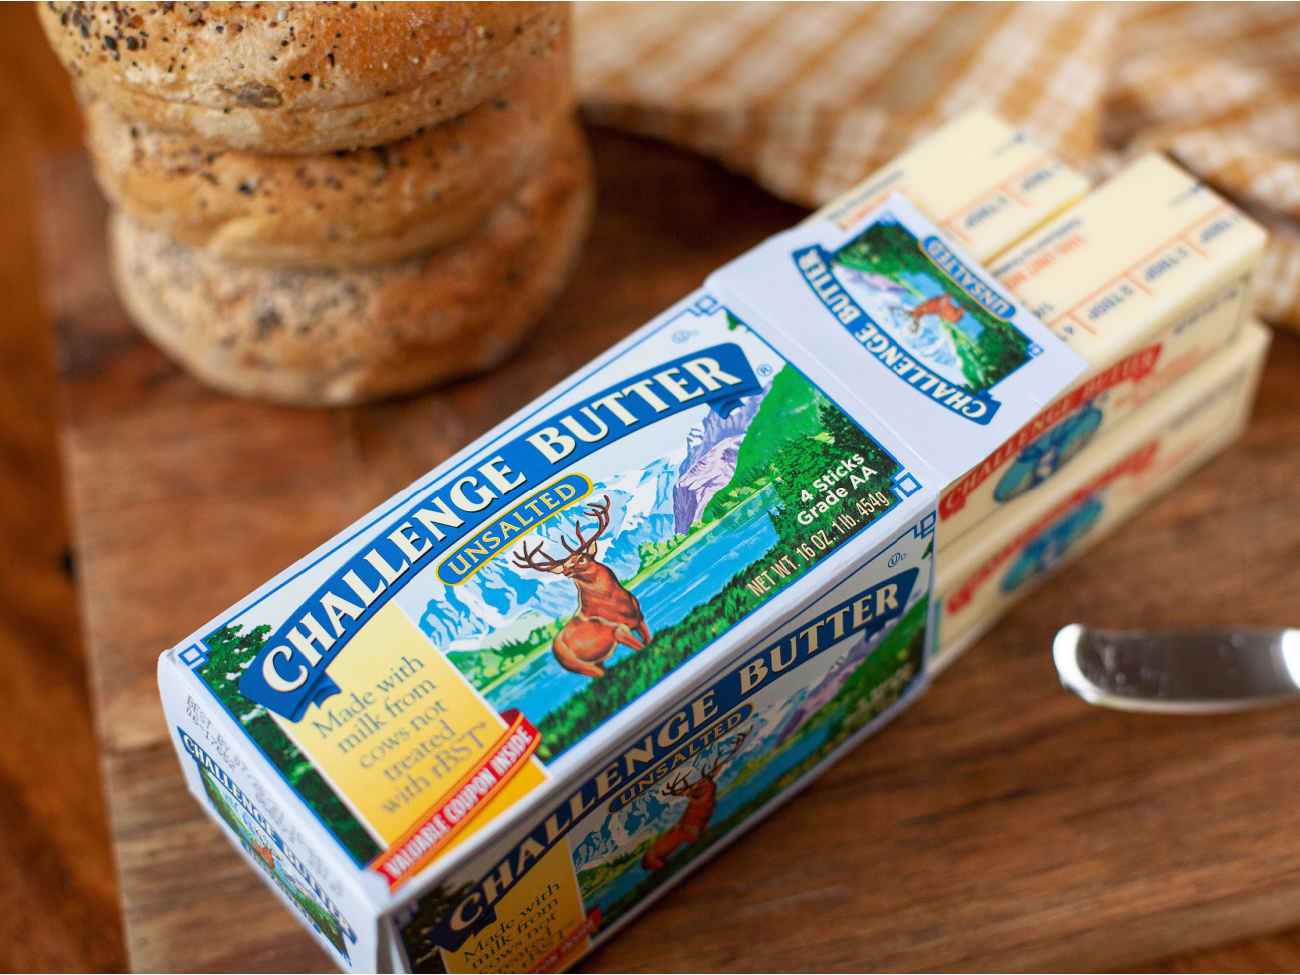 Challenge Butter As Low As $1.50 At Publix on I Heart Publix